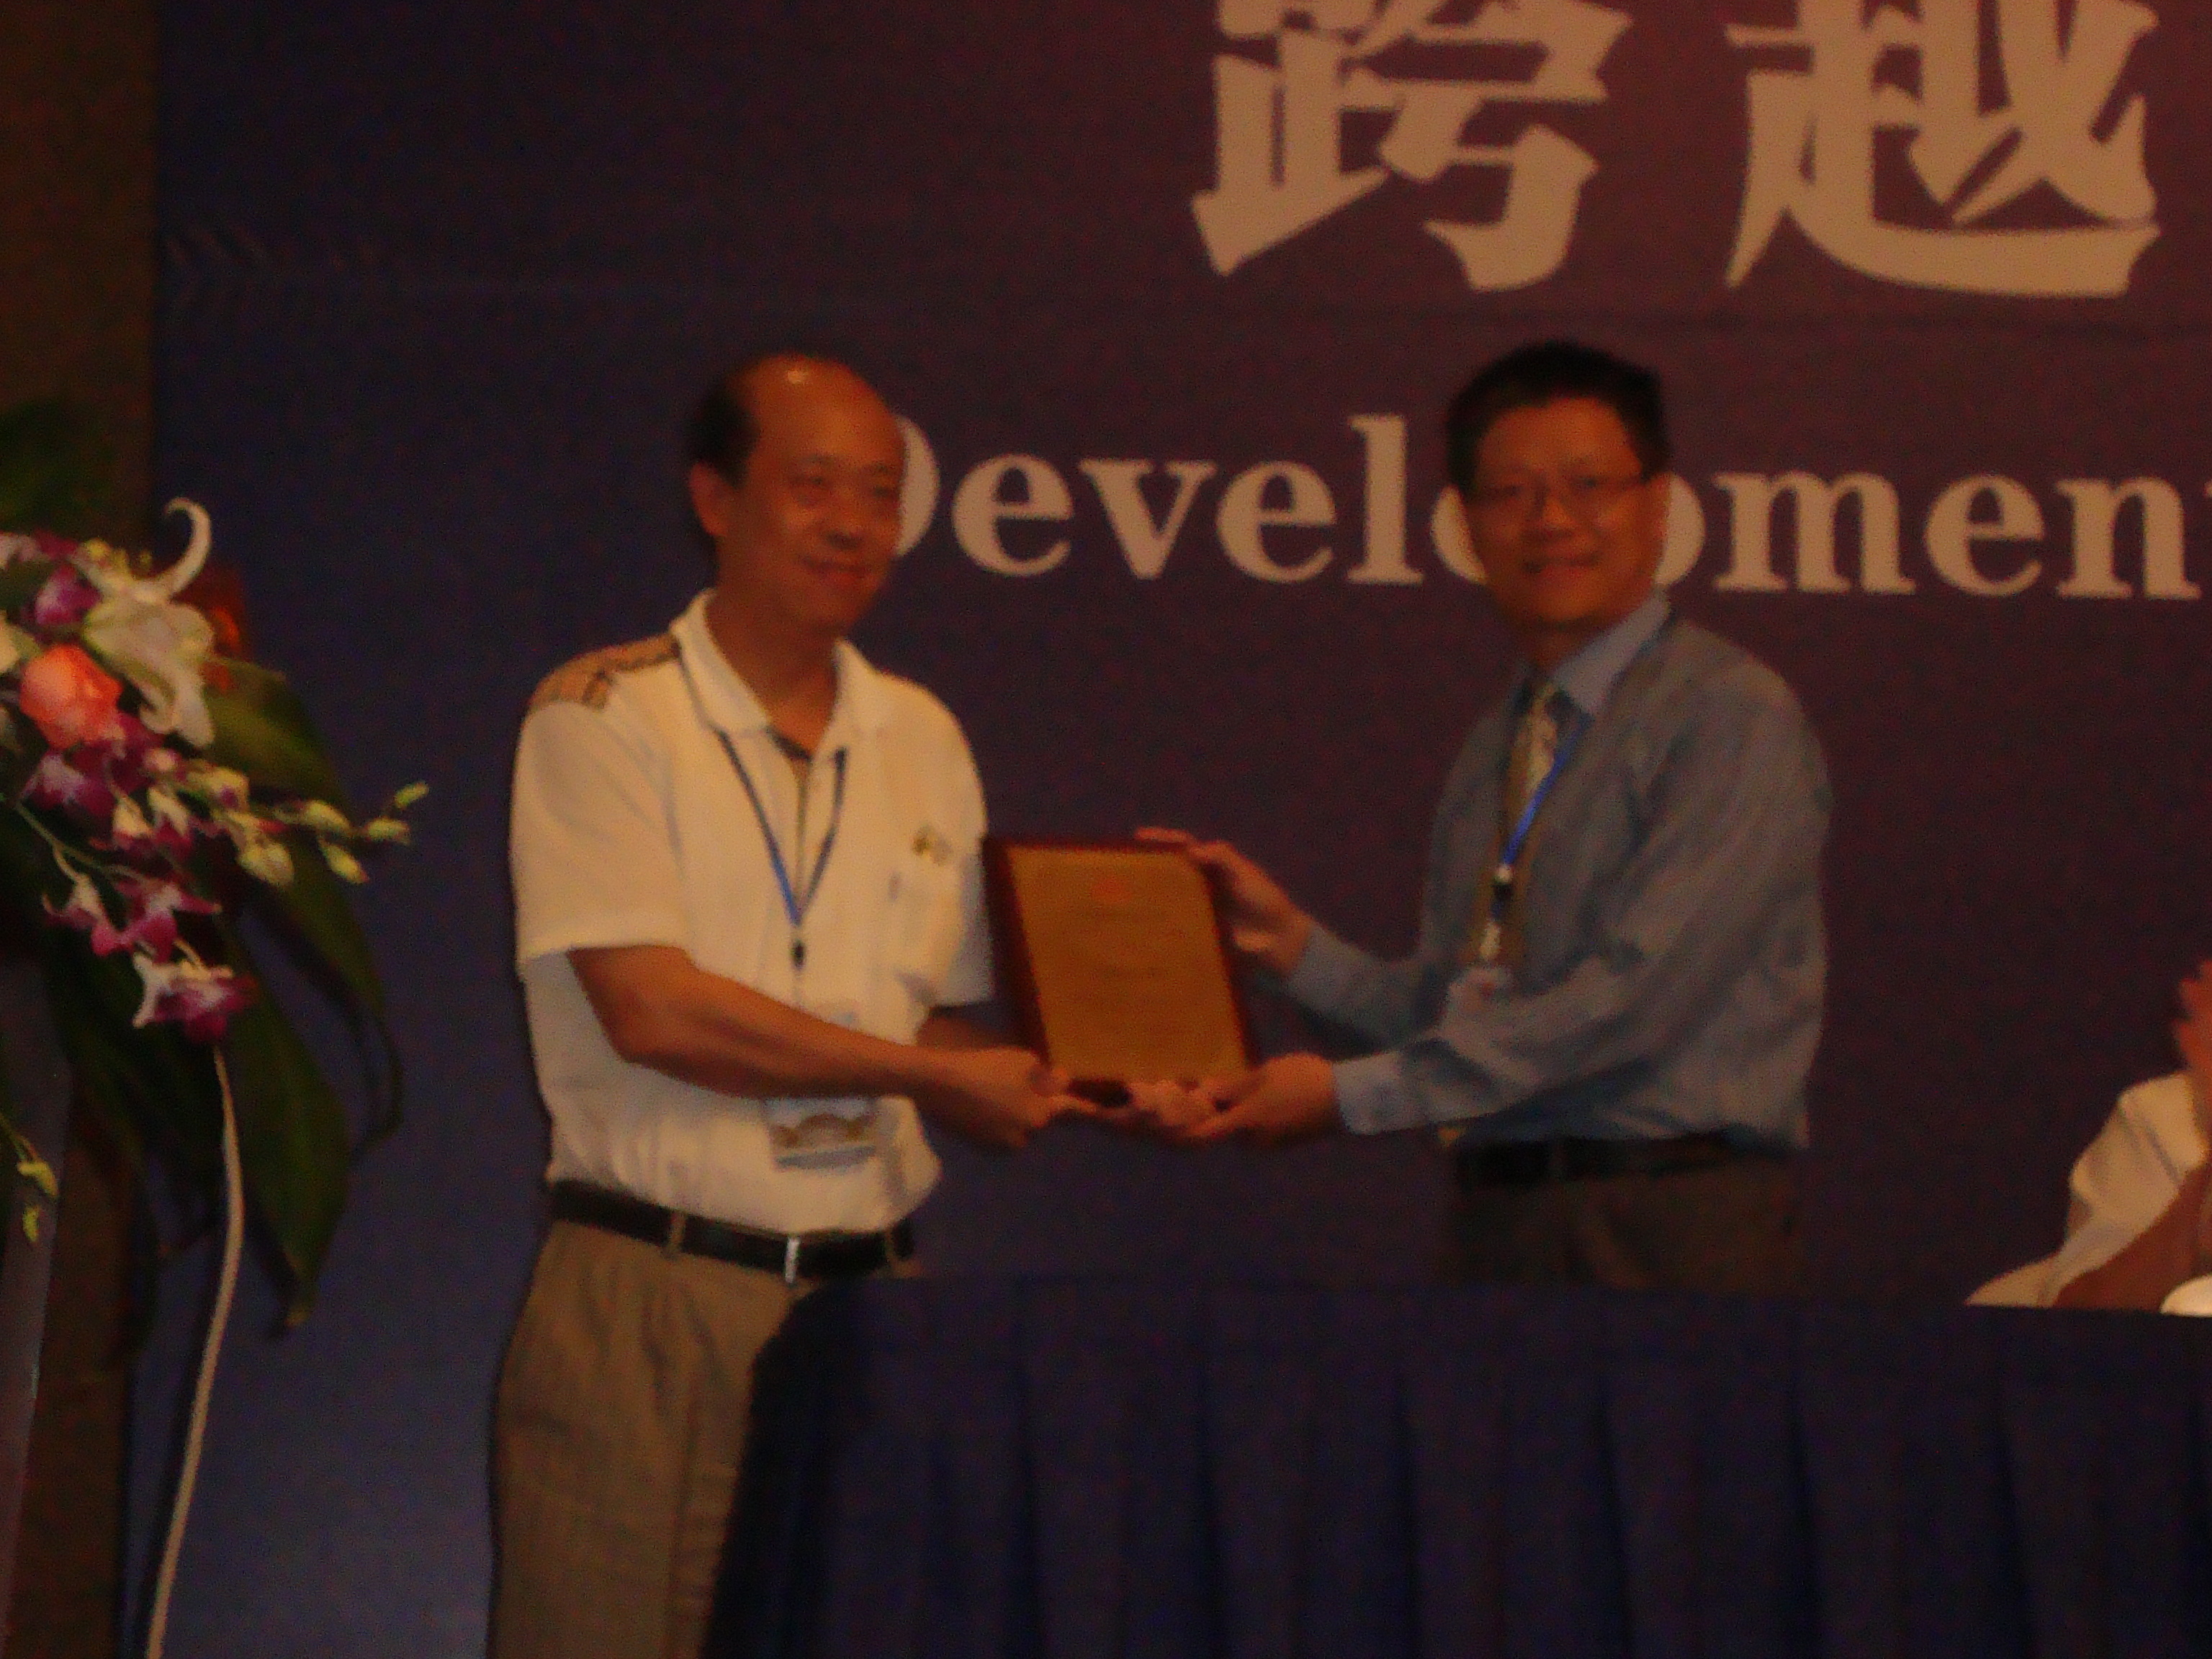 CES President Ding Lu and Vice President Yangru Wu